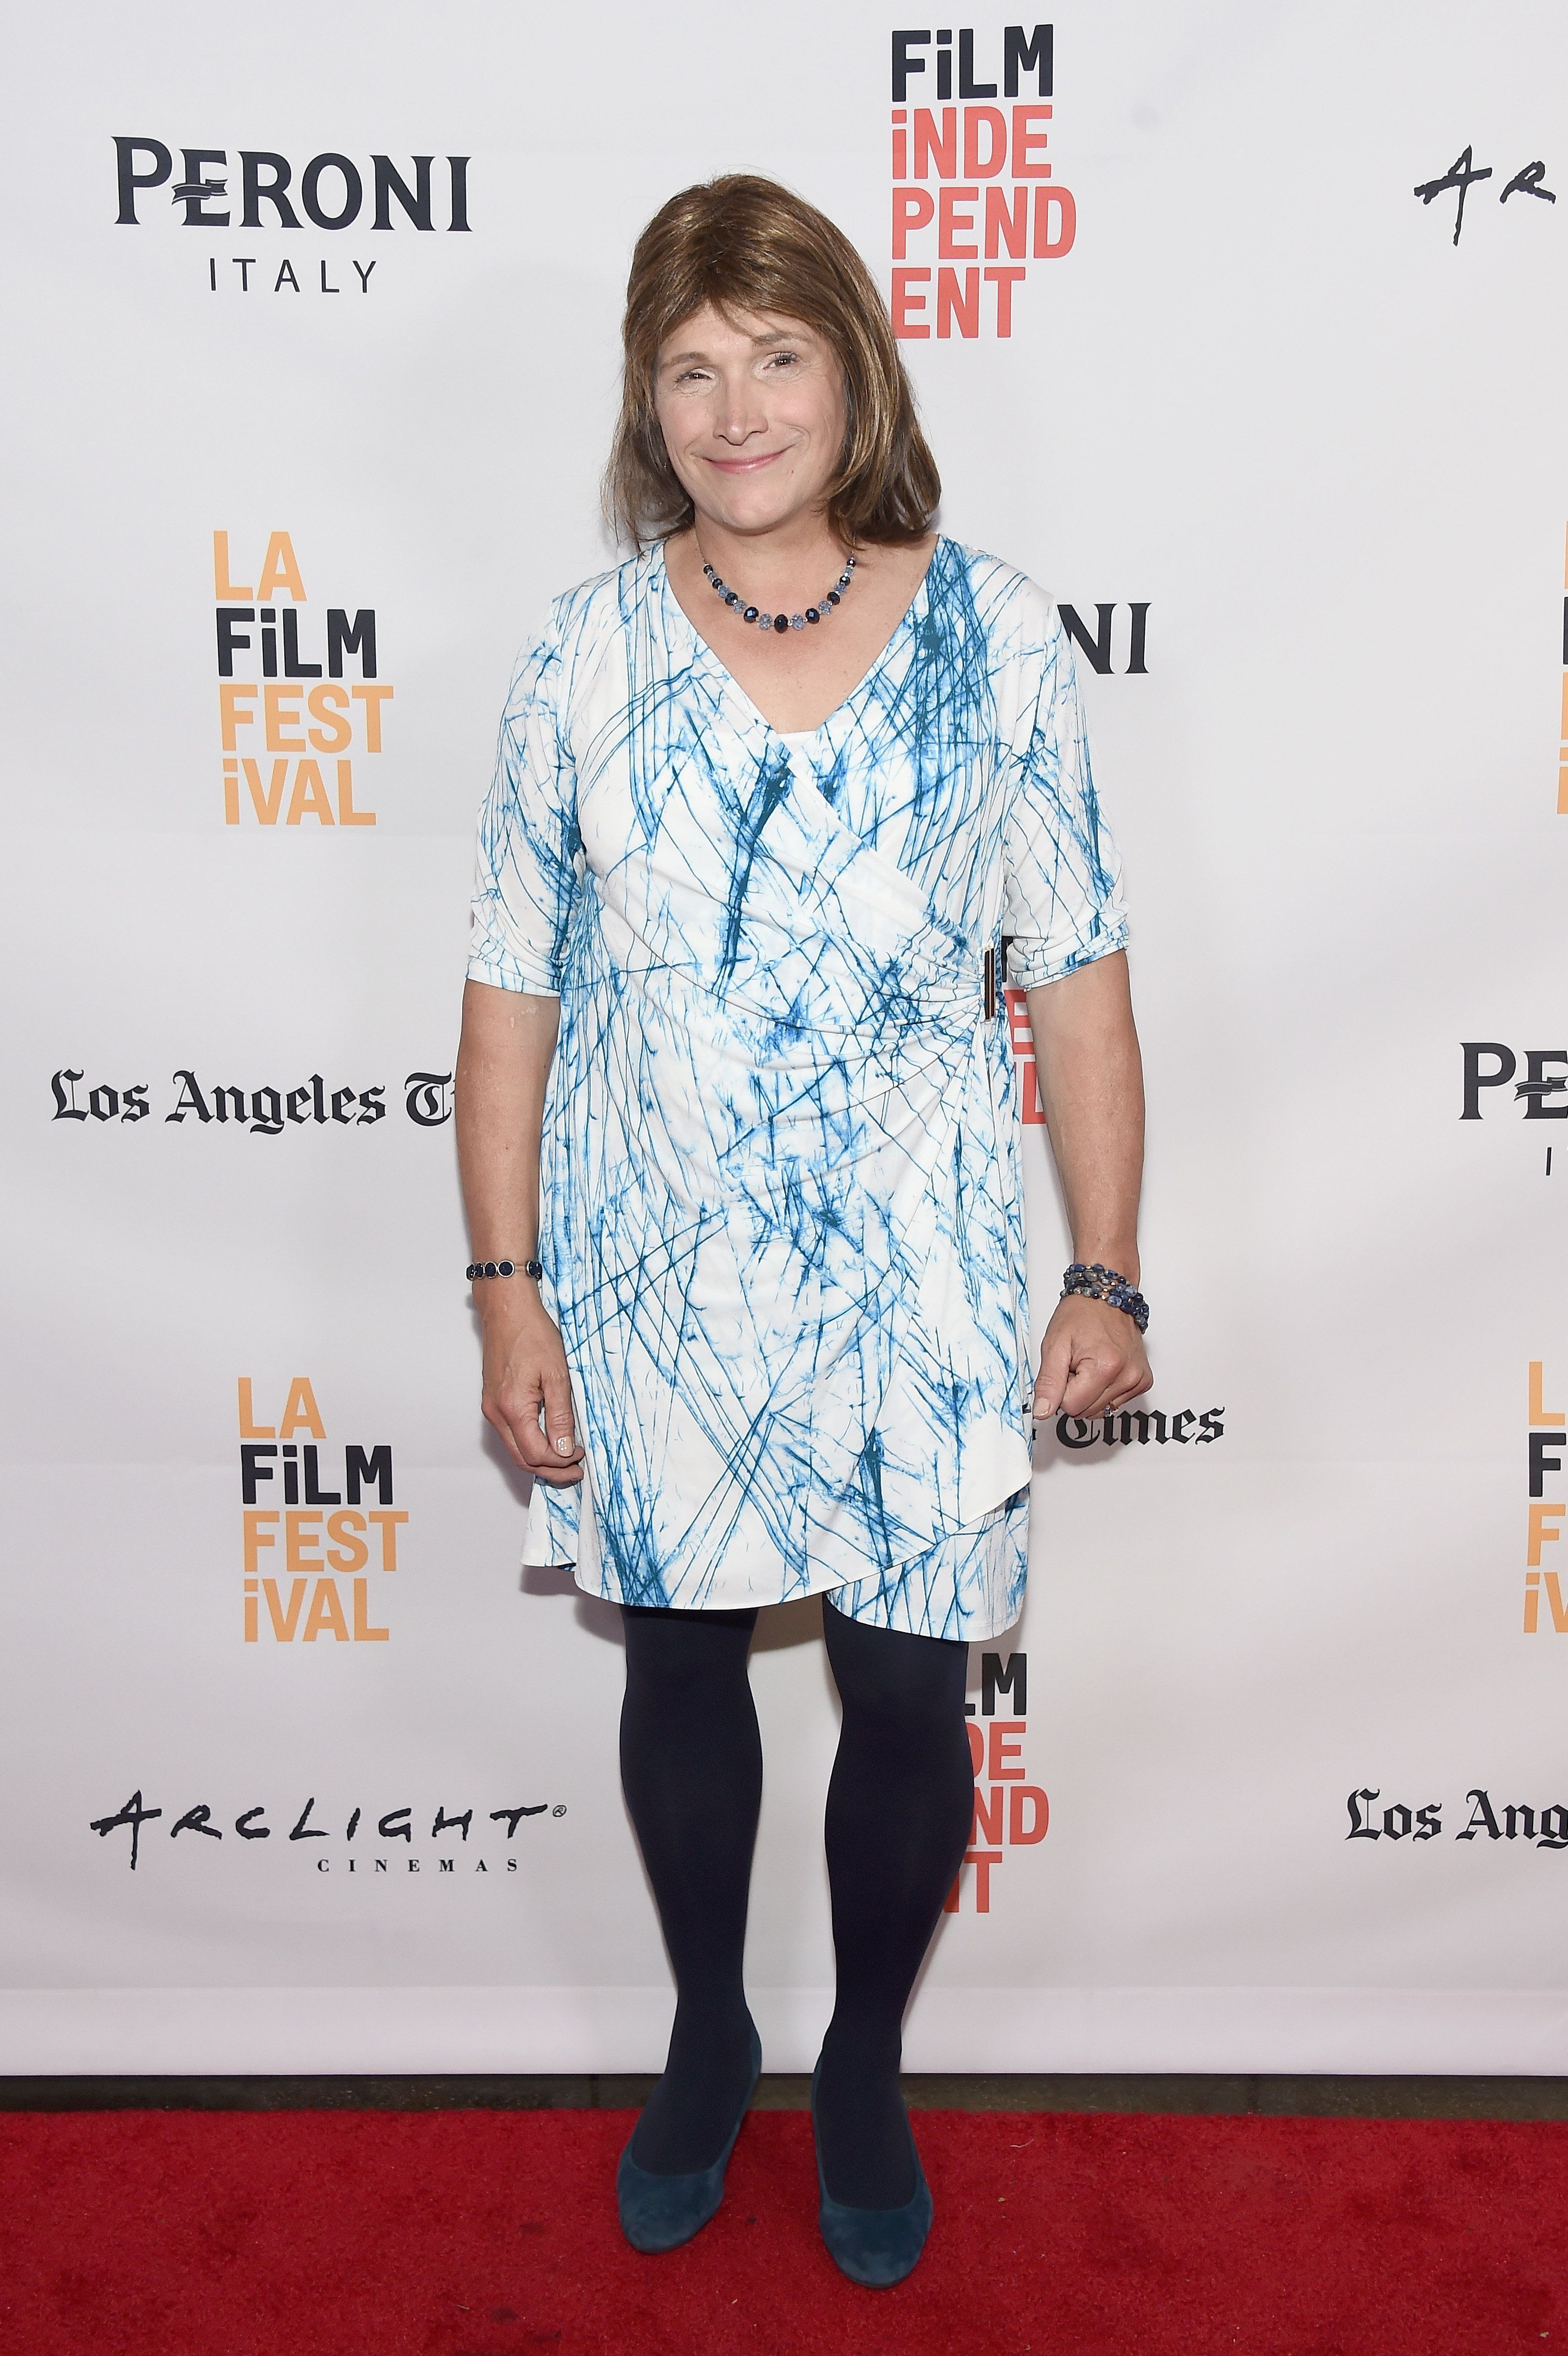 CULVER CITY, CA - JUNE 05:  Christine Hallquist  attends the premiere of 'Denial' during the 2016 Los Angeles Film Festival at Arclight Cinemas Culver City on June 5, 2016 in Culver City, California.  (Photo by Amanda Edwards/WireImage)